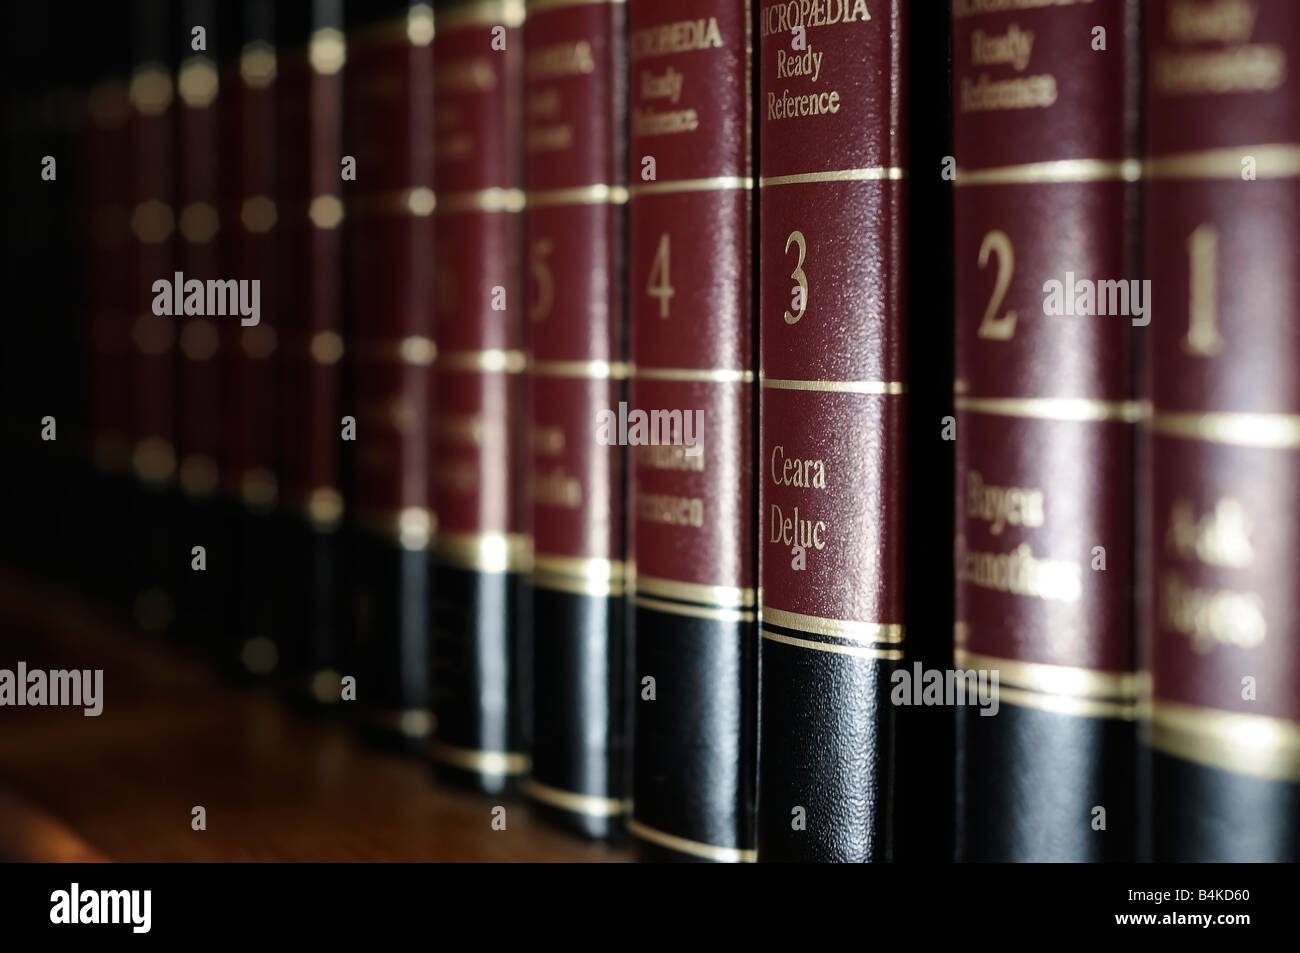 Row of refernce books on library shelf - Stock Image